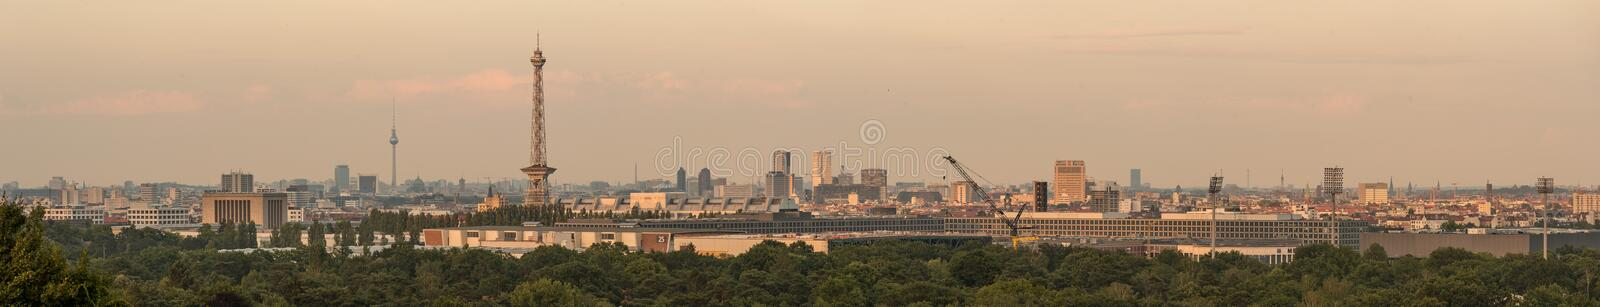 Berlin cityscape as viewed from the dragon`s hill. royalty free stock photo